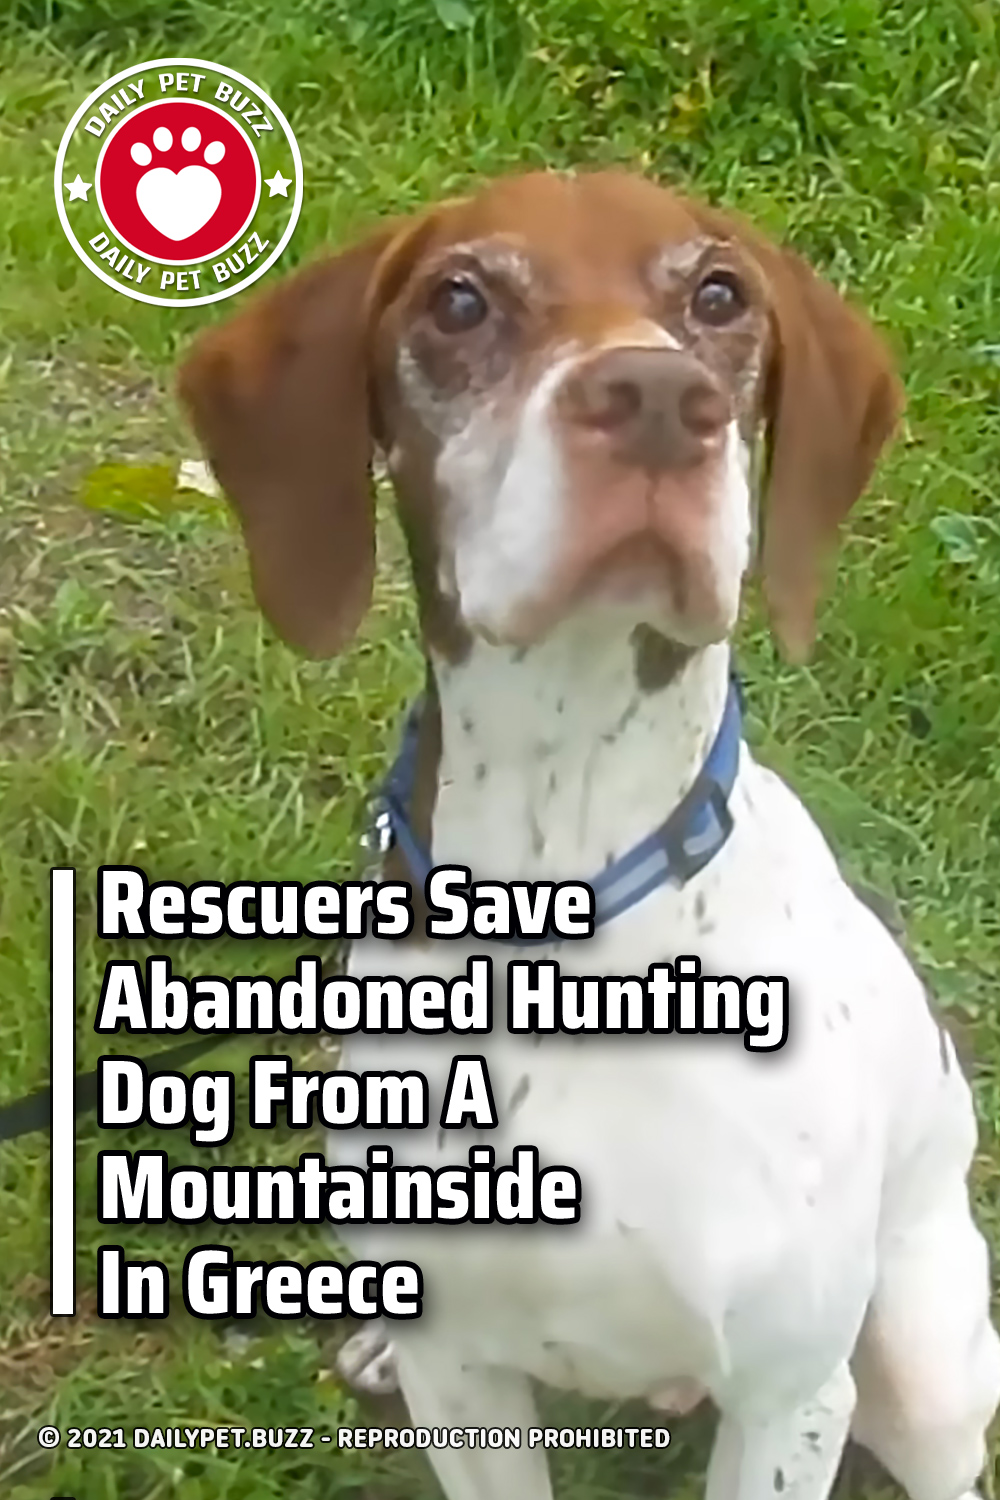 Rescuers Save Abandoned Hunting Dog From A Mountainside In Greece